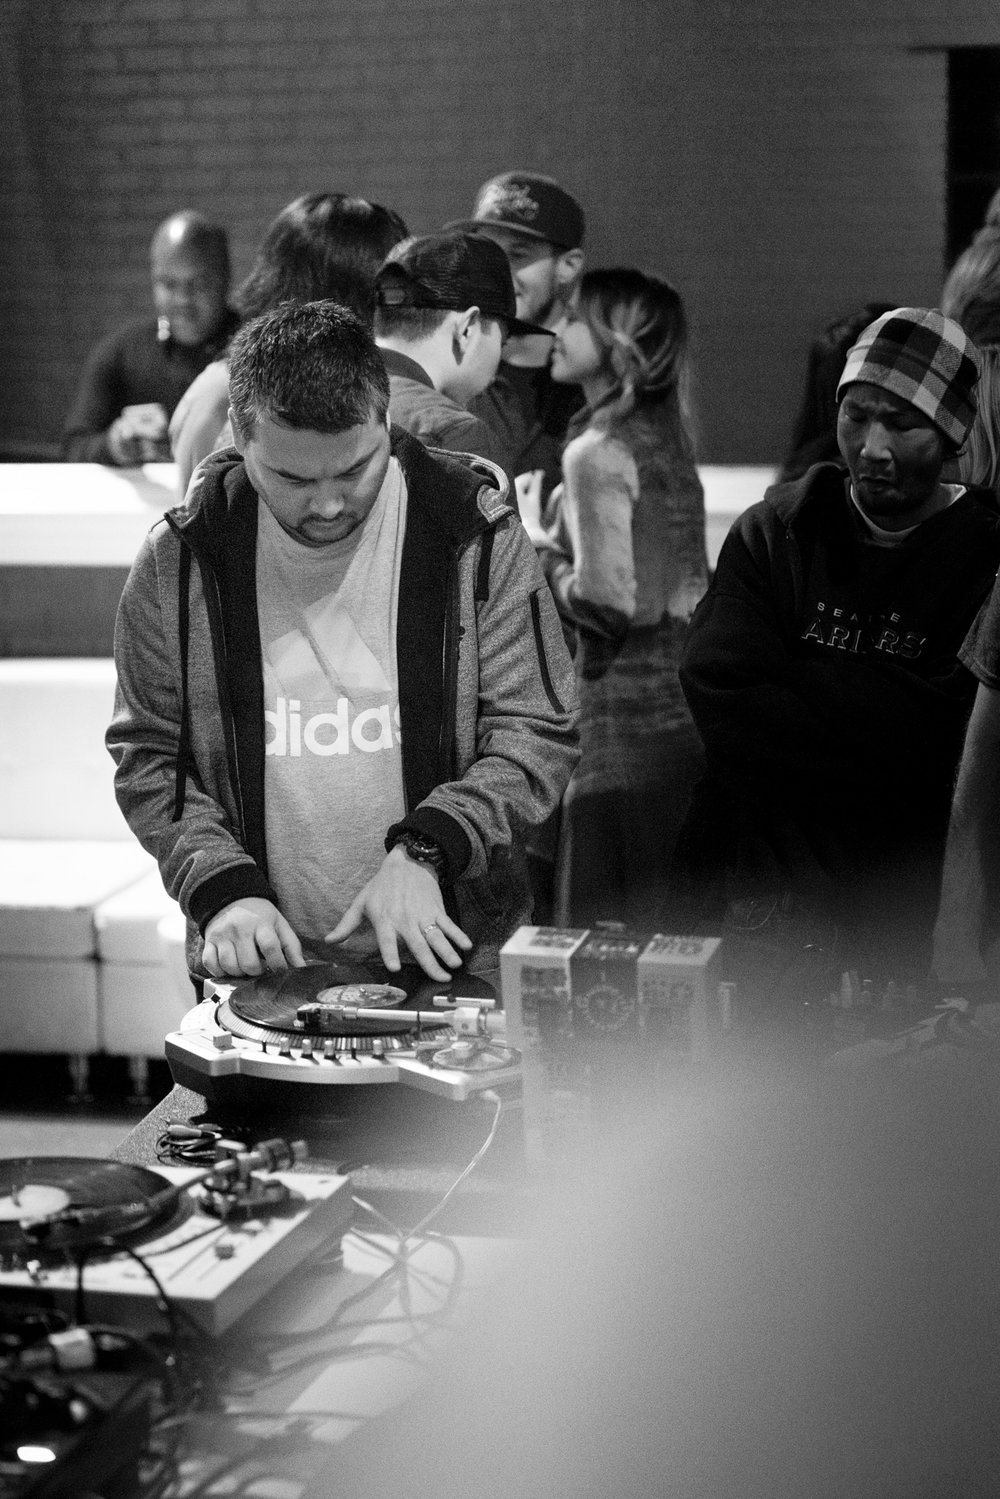 2016_11_03_Skratch Lounge_0103_Export.jpg